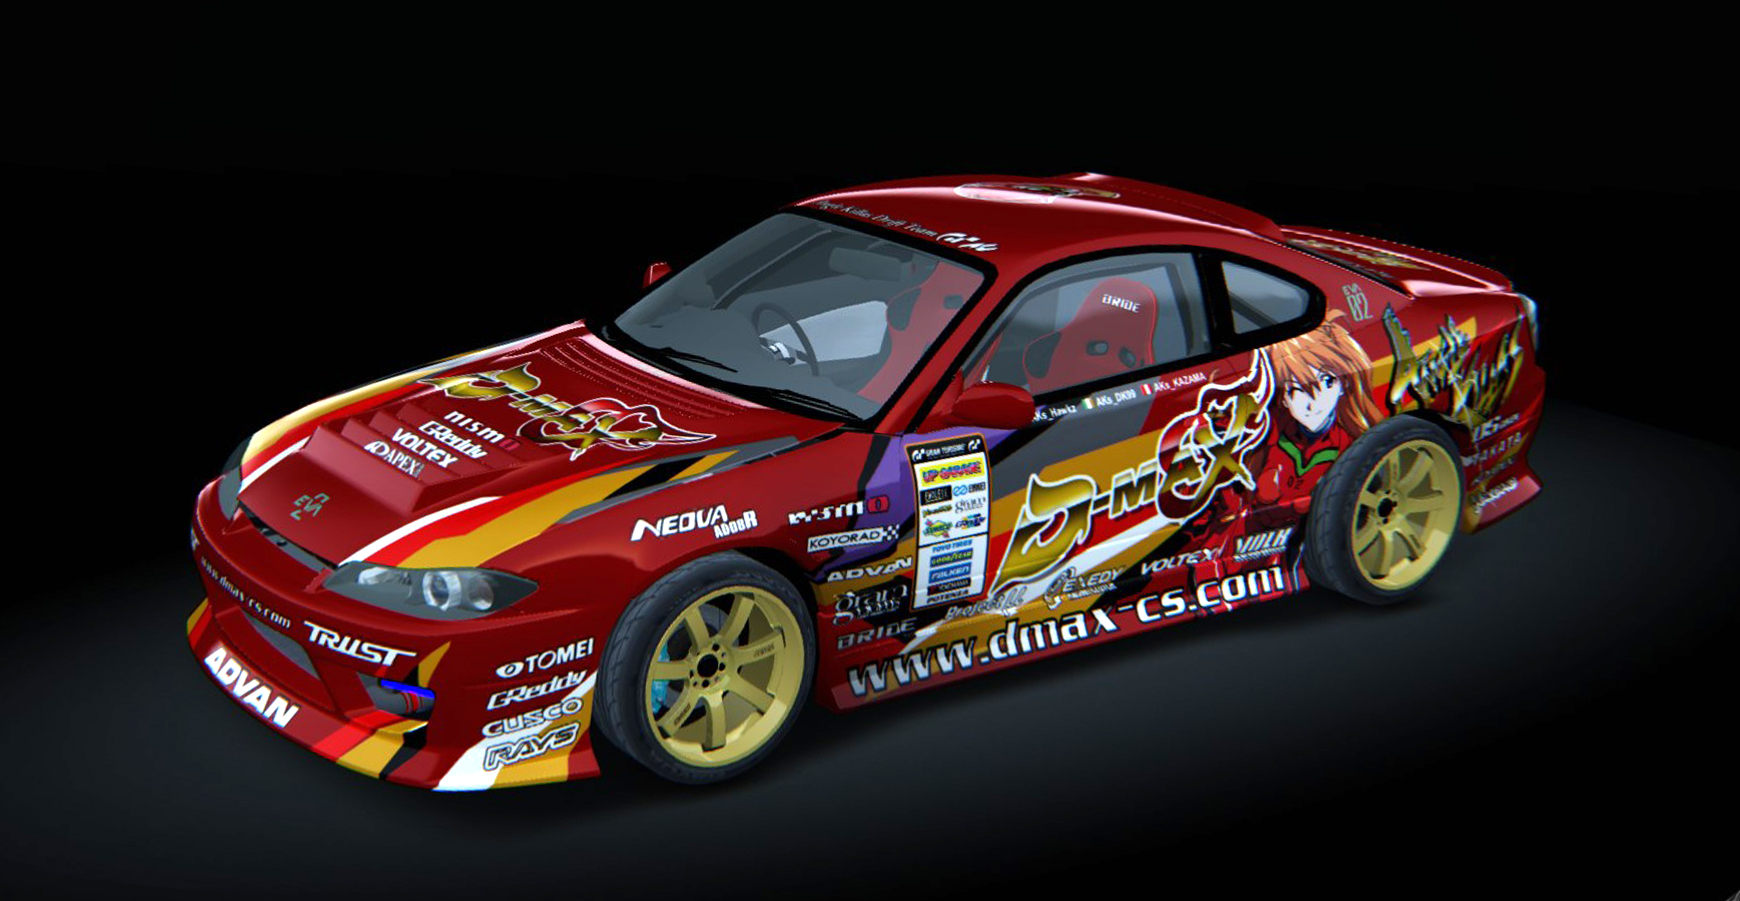 How To Fix Ac In Car >> ti_nissan_sil15 and tnt_sc400_1jz 4K Drift Skins Pack | RaceDepartment - Latest Formula 1 ...